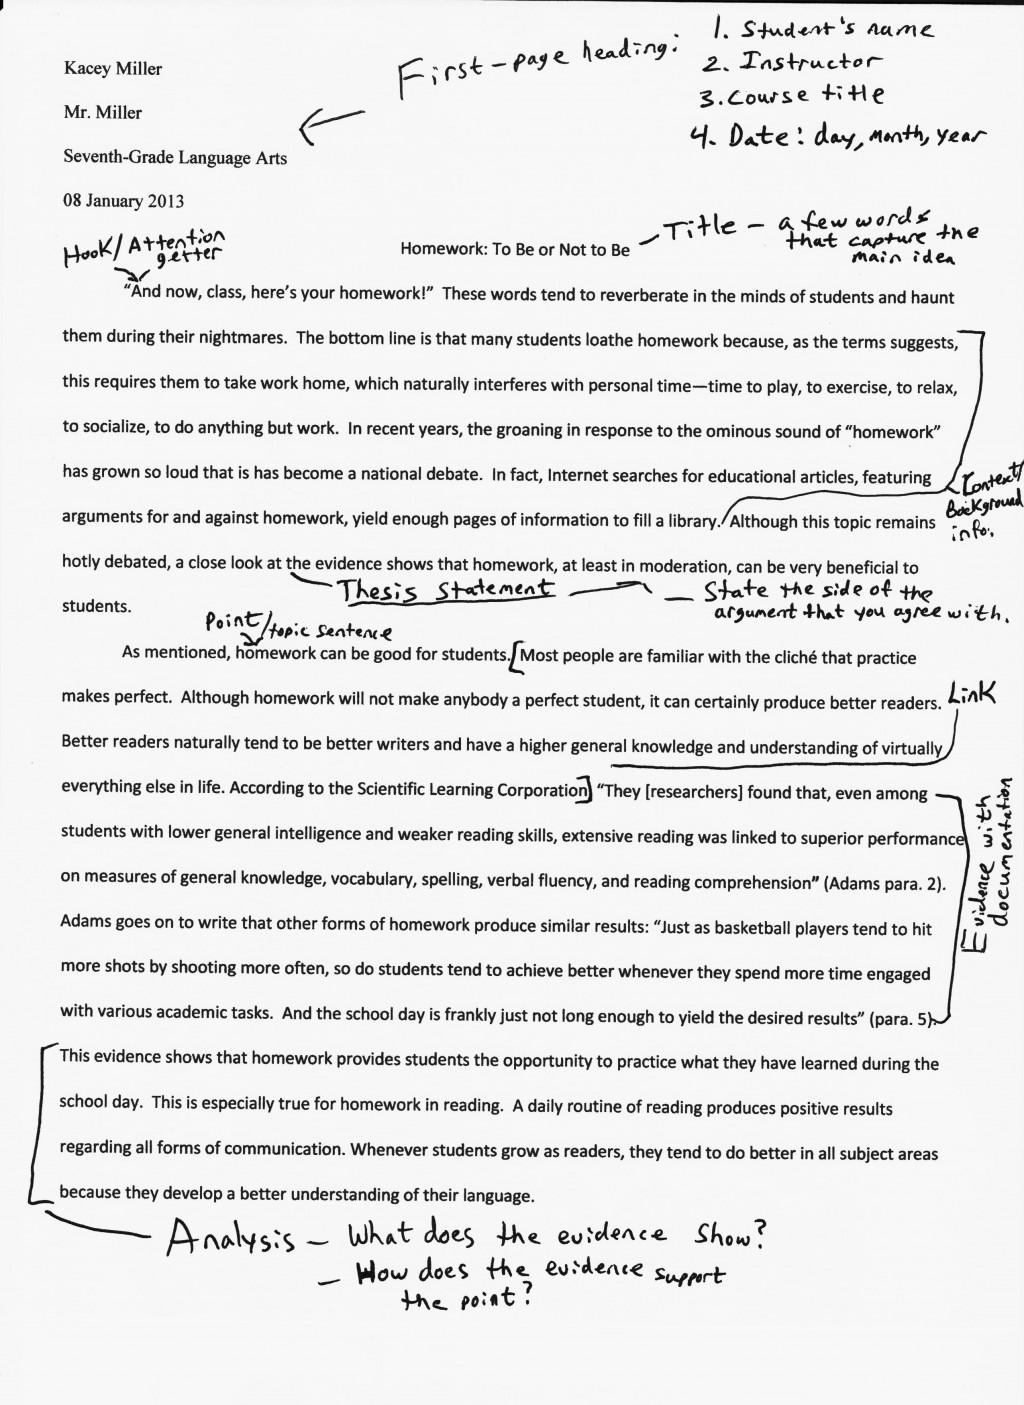 010 Argumentative Essay On Death Penalty Mentor20argument20essay20page20120001 Unbelievable Ideas Persuasive About In The Philippines Pro Large